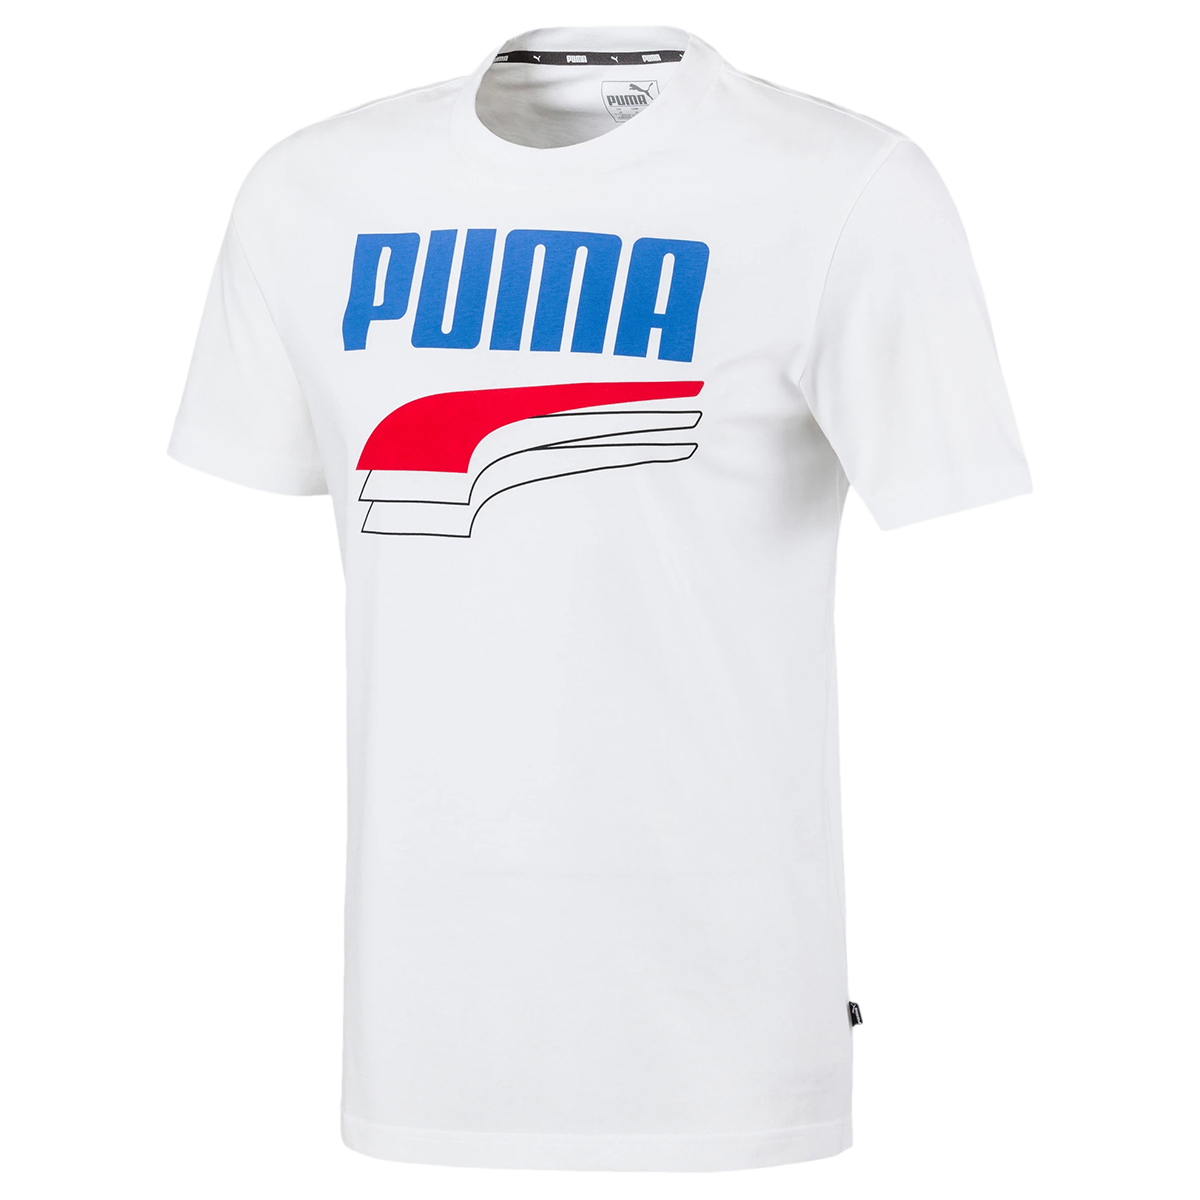 Puma Men's Rebele Bold Short-Sleeve Logo Tee - White, XL